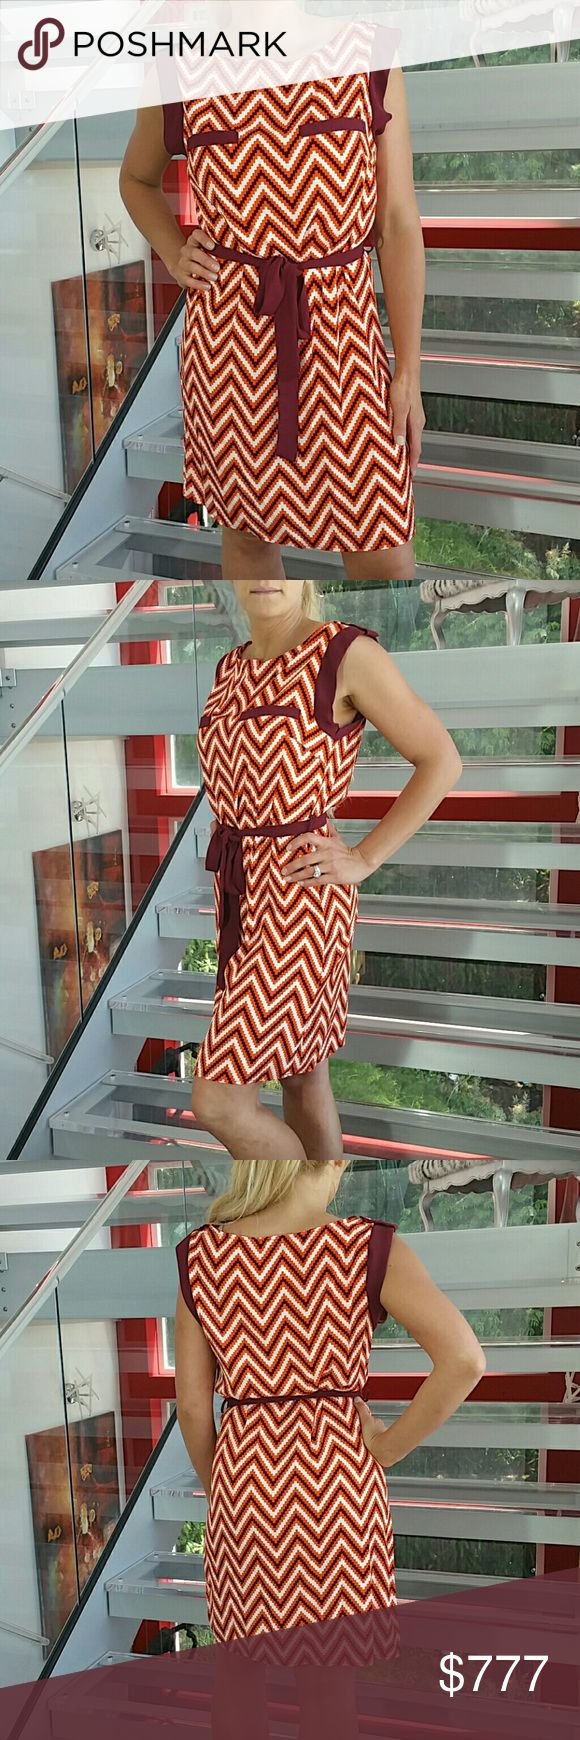 """""""Chic n' Chevron"""" print dress NWOT Brand new no tags  MADE IN THE USA!!  Playful chevron print dress. Ties at waist with material belt. Pair with a denim jacket and statement sneakers or with heels and gold statement jewelry!  Slip on style Button detail at neckline 100% polyester LENGTH approx 34"""" Bust side to side approx 17"""" Dresses"""